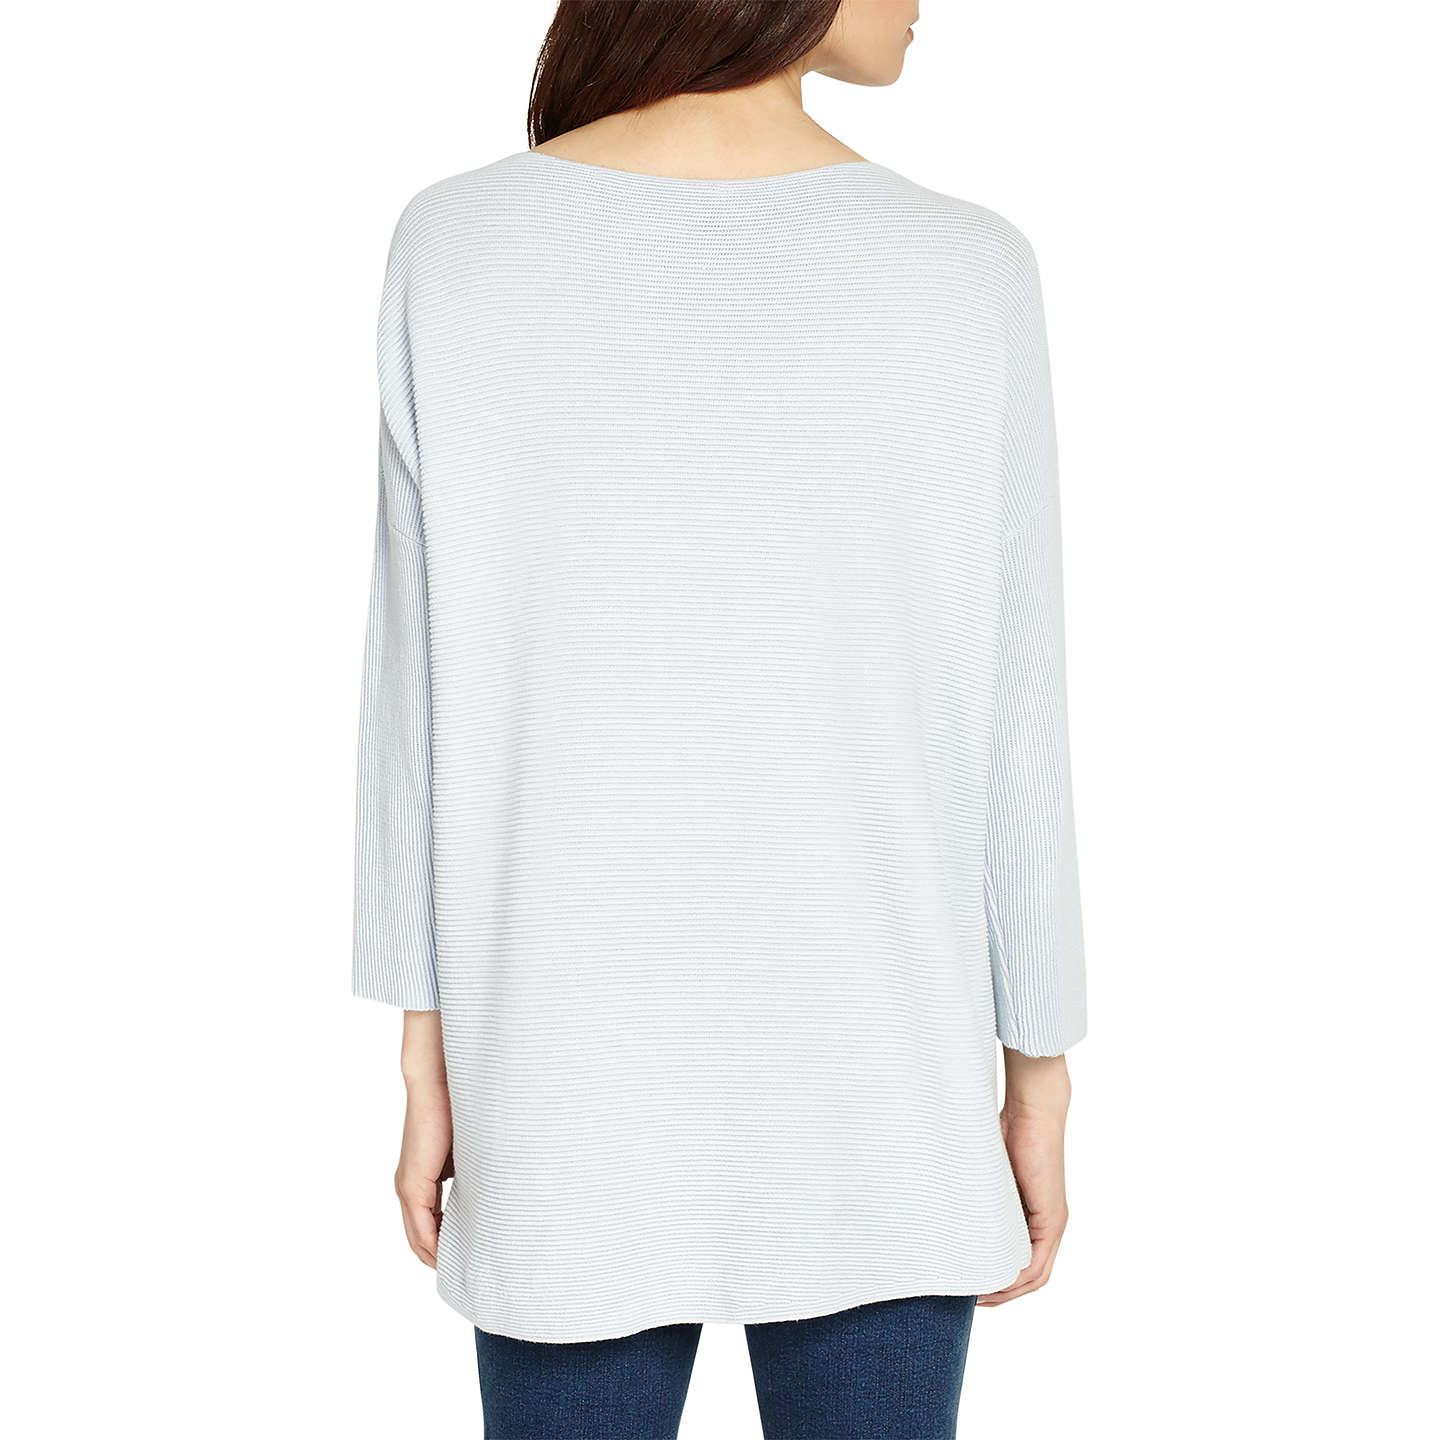 BuyPhase Eight Plain Piera Ripple Stretch Knit Jumper, Soft Blue, XS Online at johnlewis.com